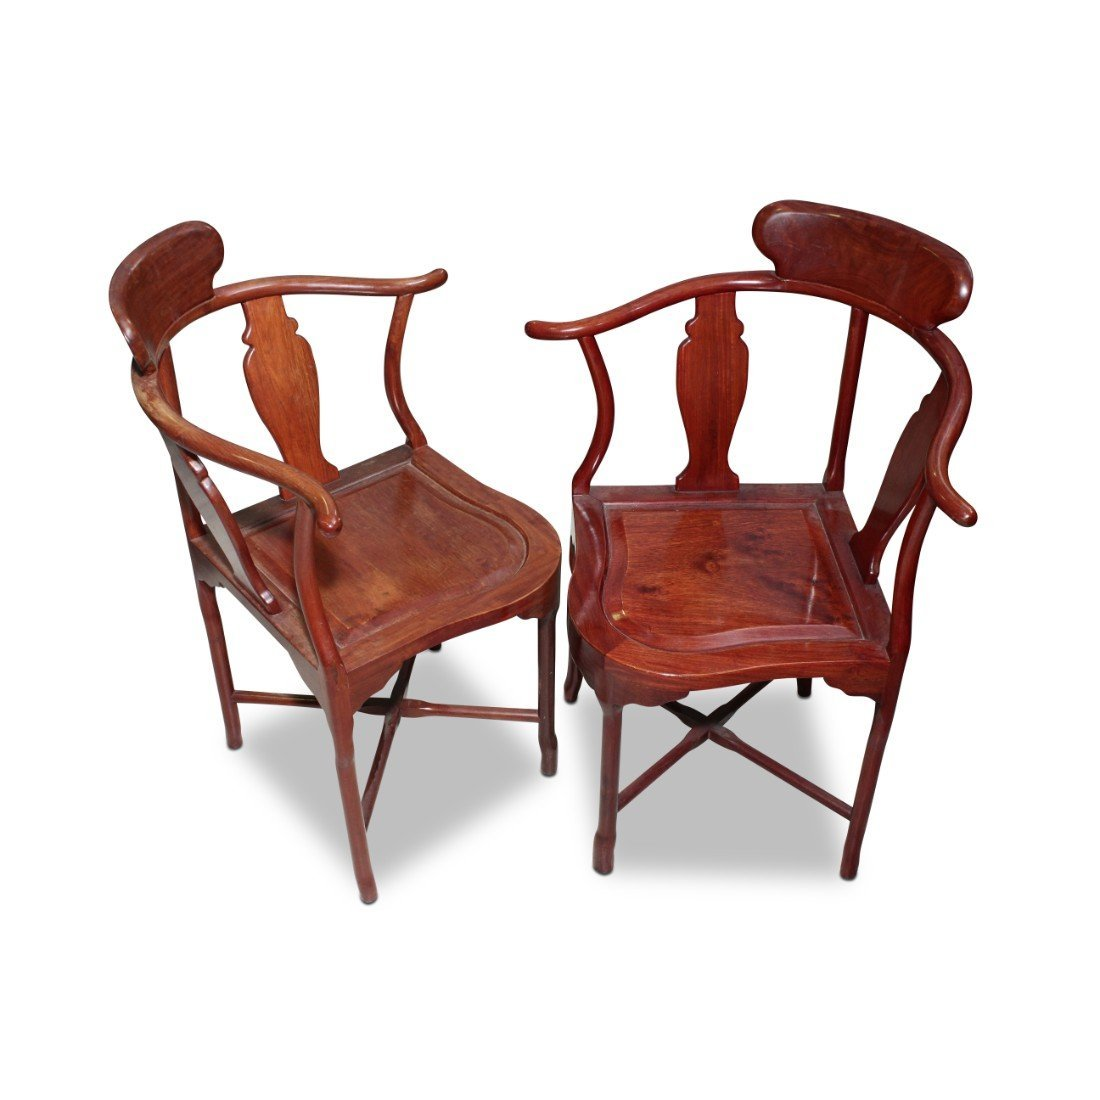 Pair of Chinese Horse Shoe Back Corner Chairs,